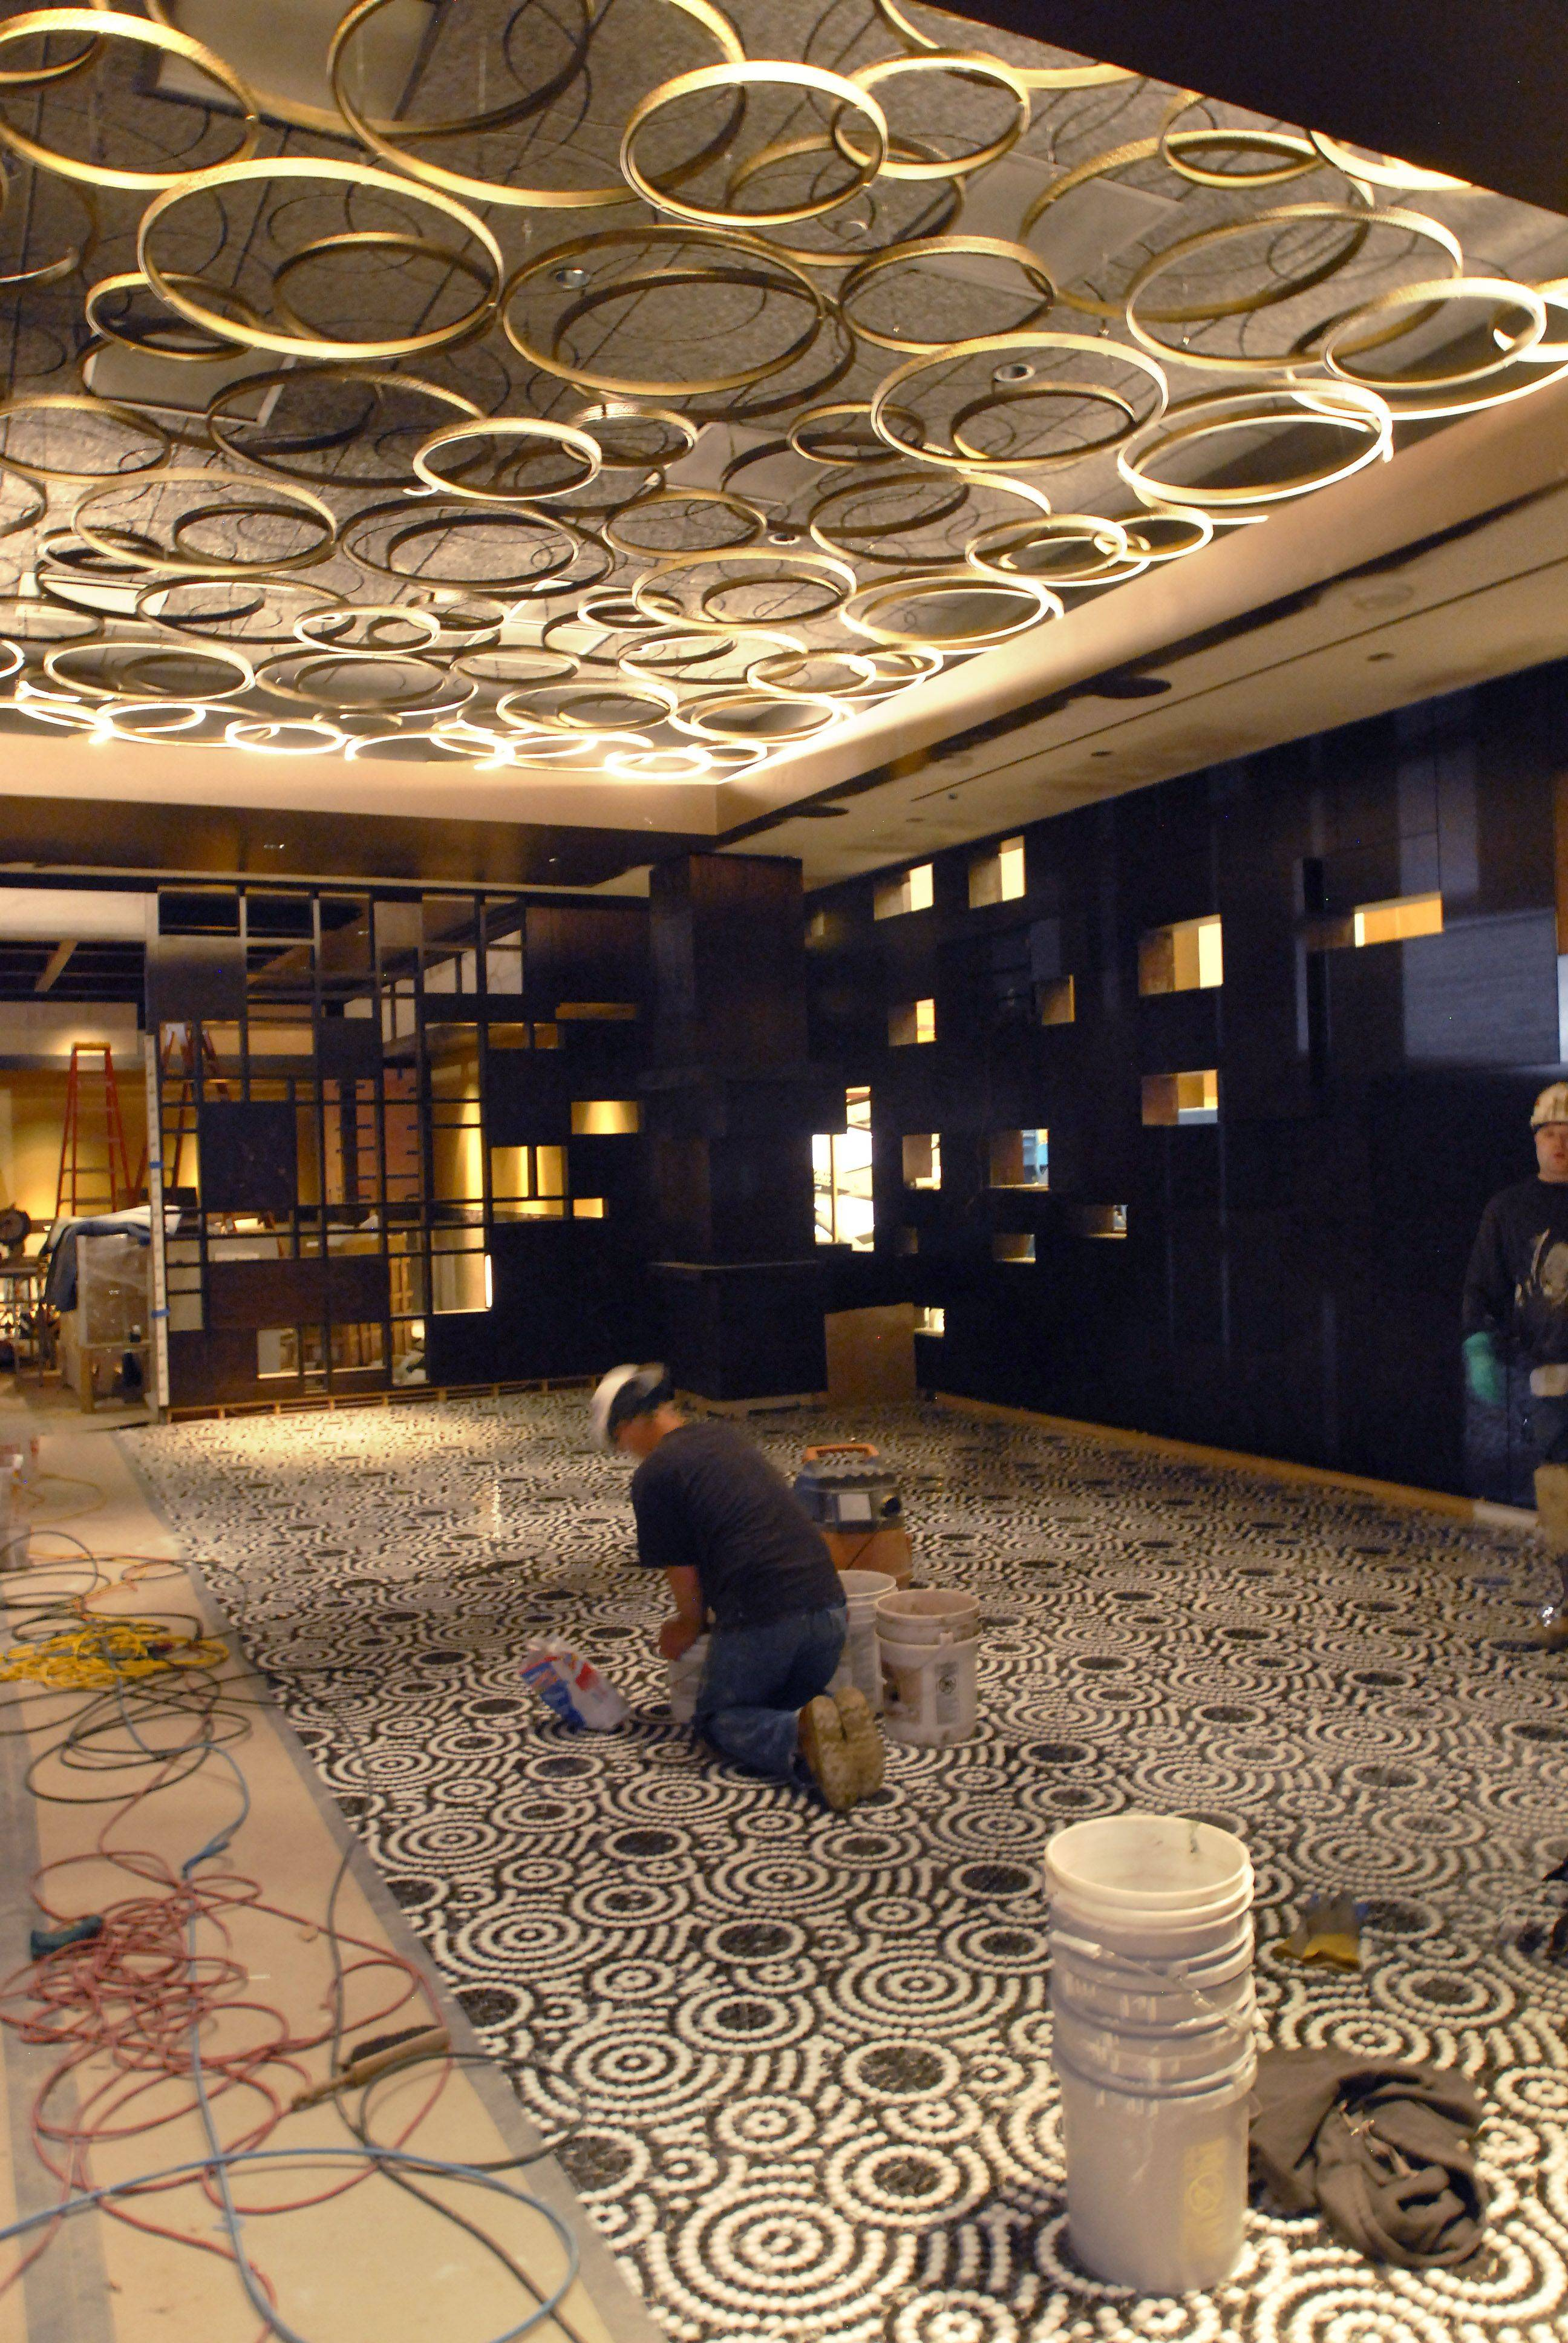 A worker installs a mosaic tile floor in the upscale Hugo's Frog Bar and Chophouse, which is part of the Gibson's Restaurant Group, that will feature steaks and seafood. At left, FLIPT will be a casual grill serving freshly made burgers, sandwiches, fries and shakes.